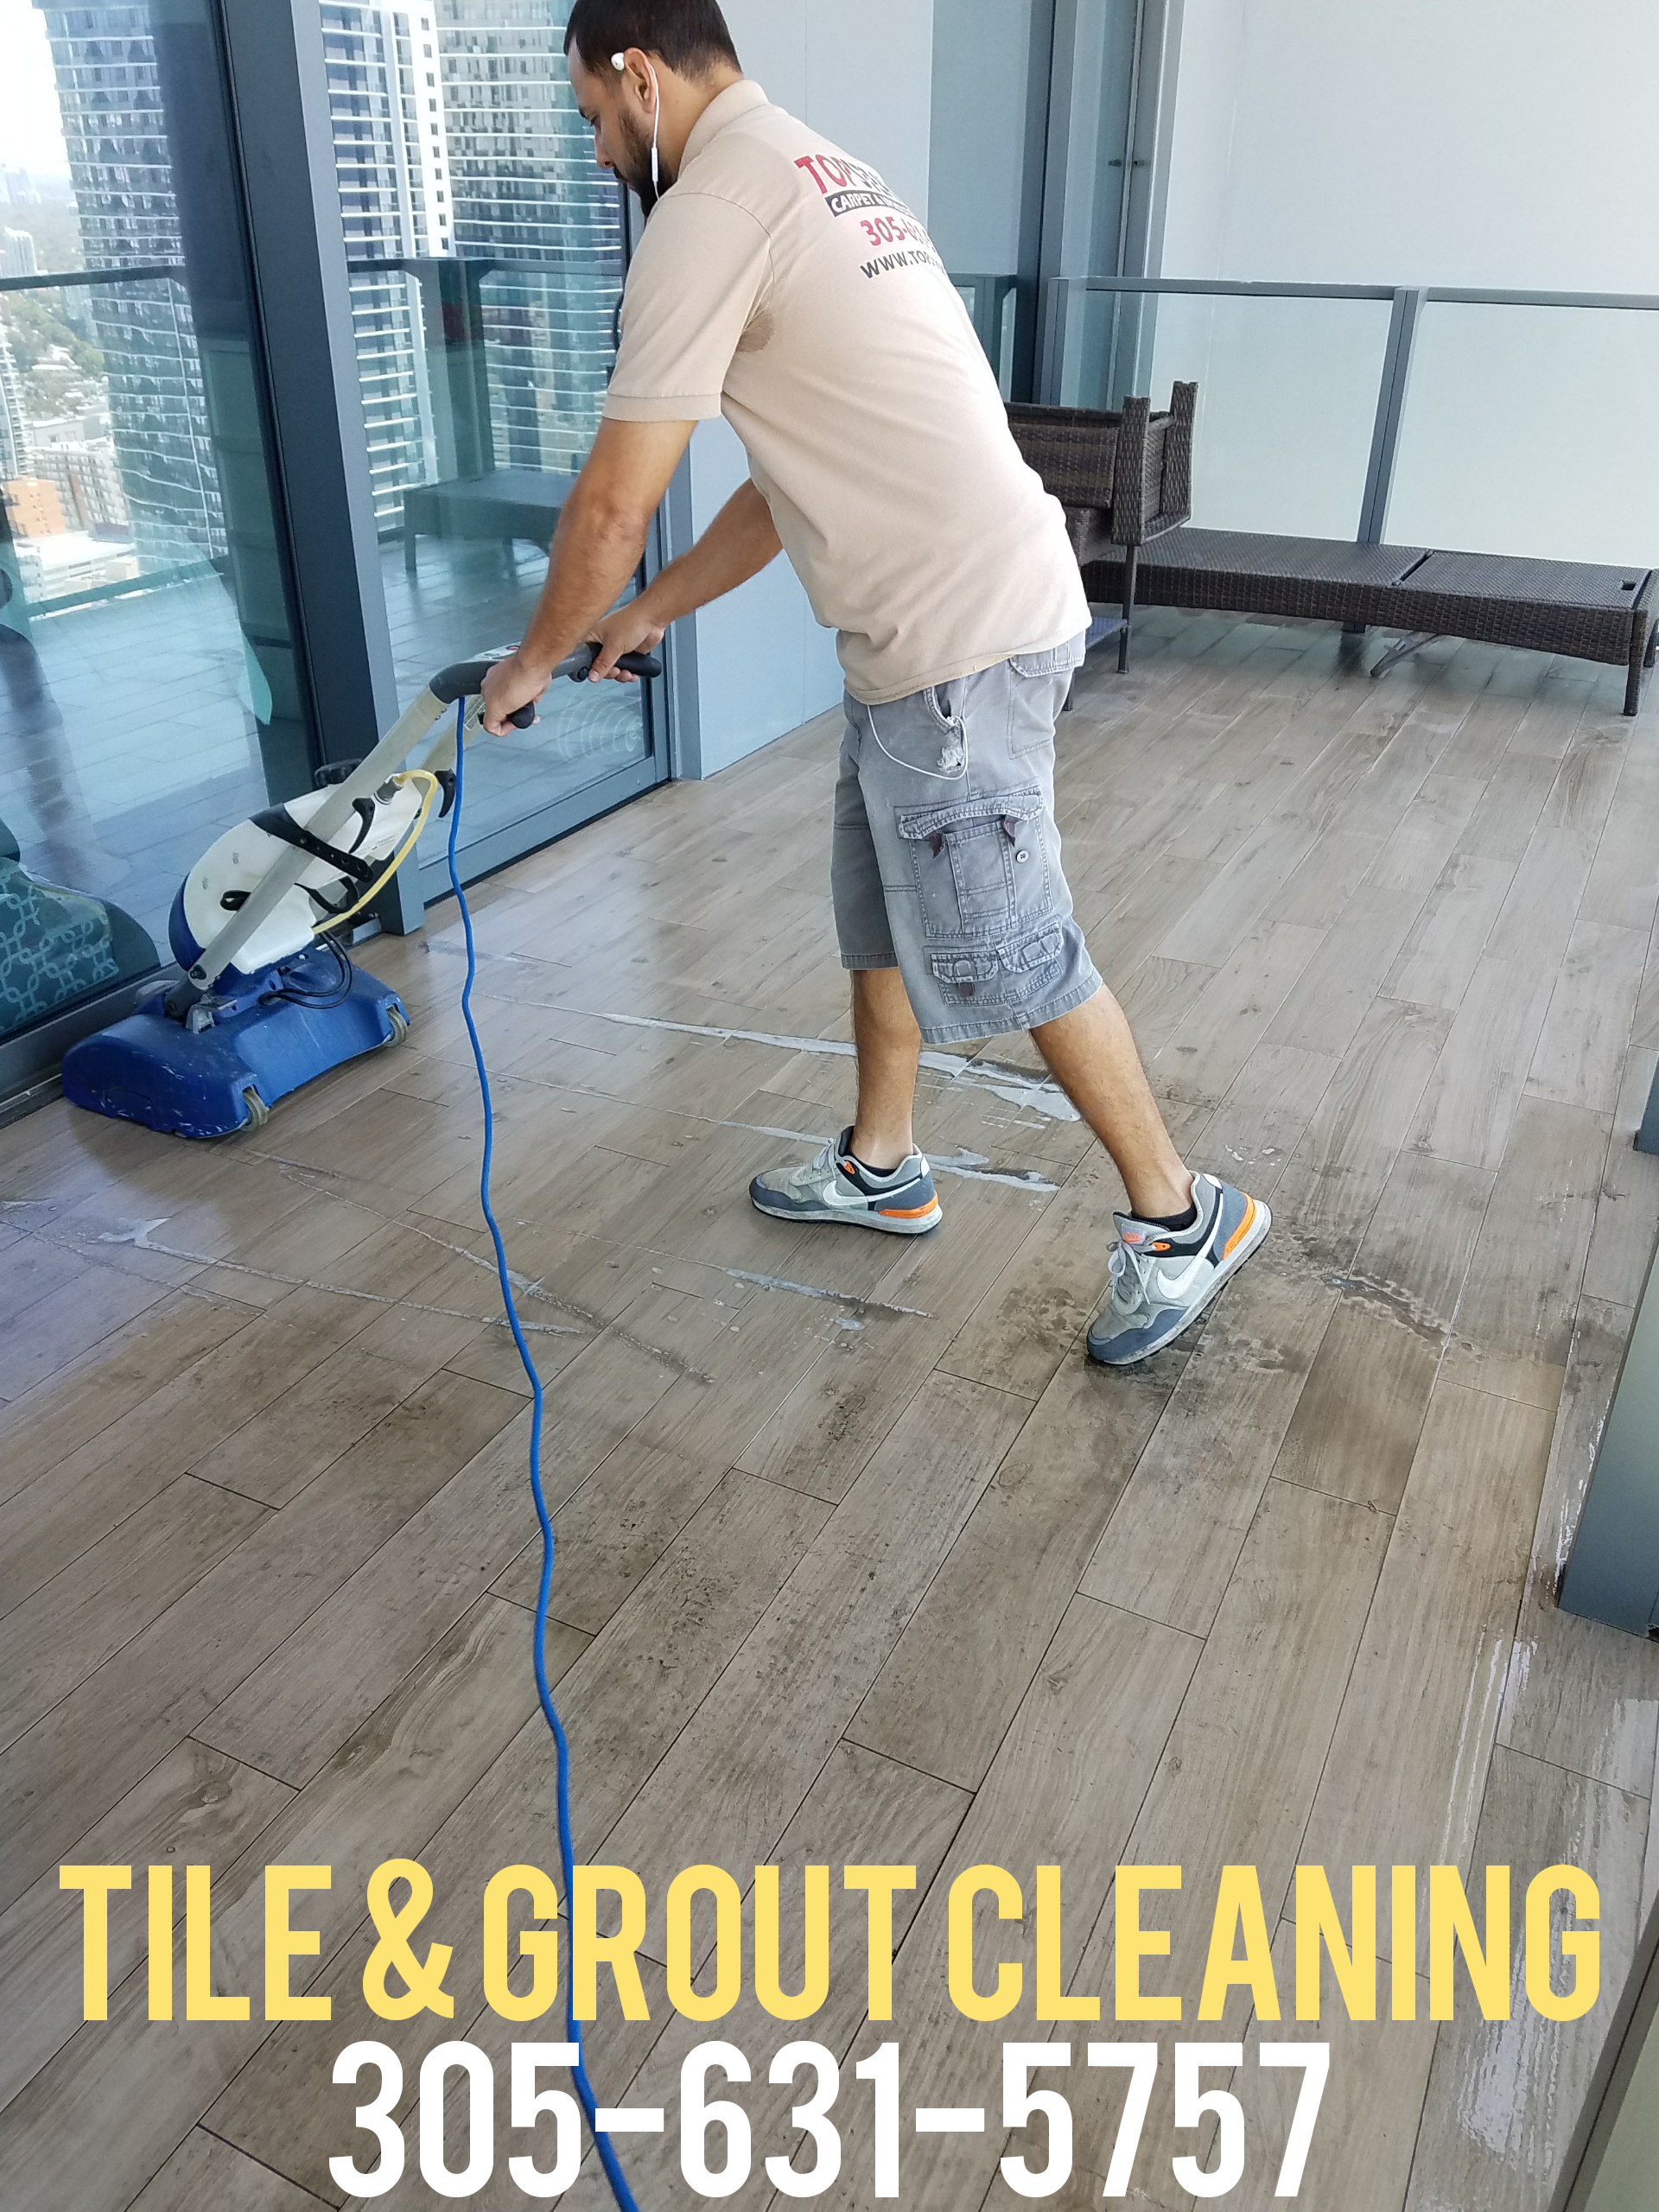 Tile cleaning Brickell